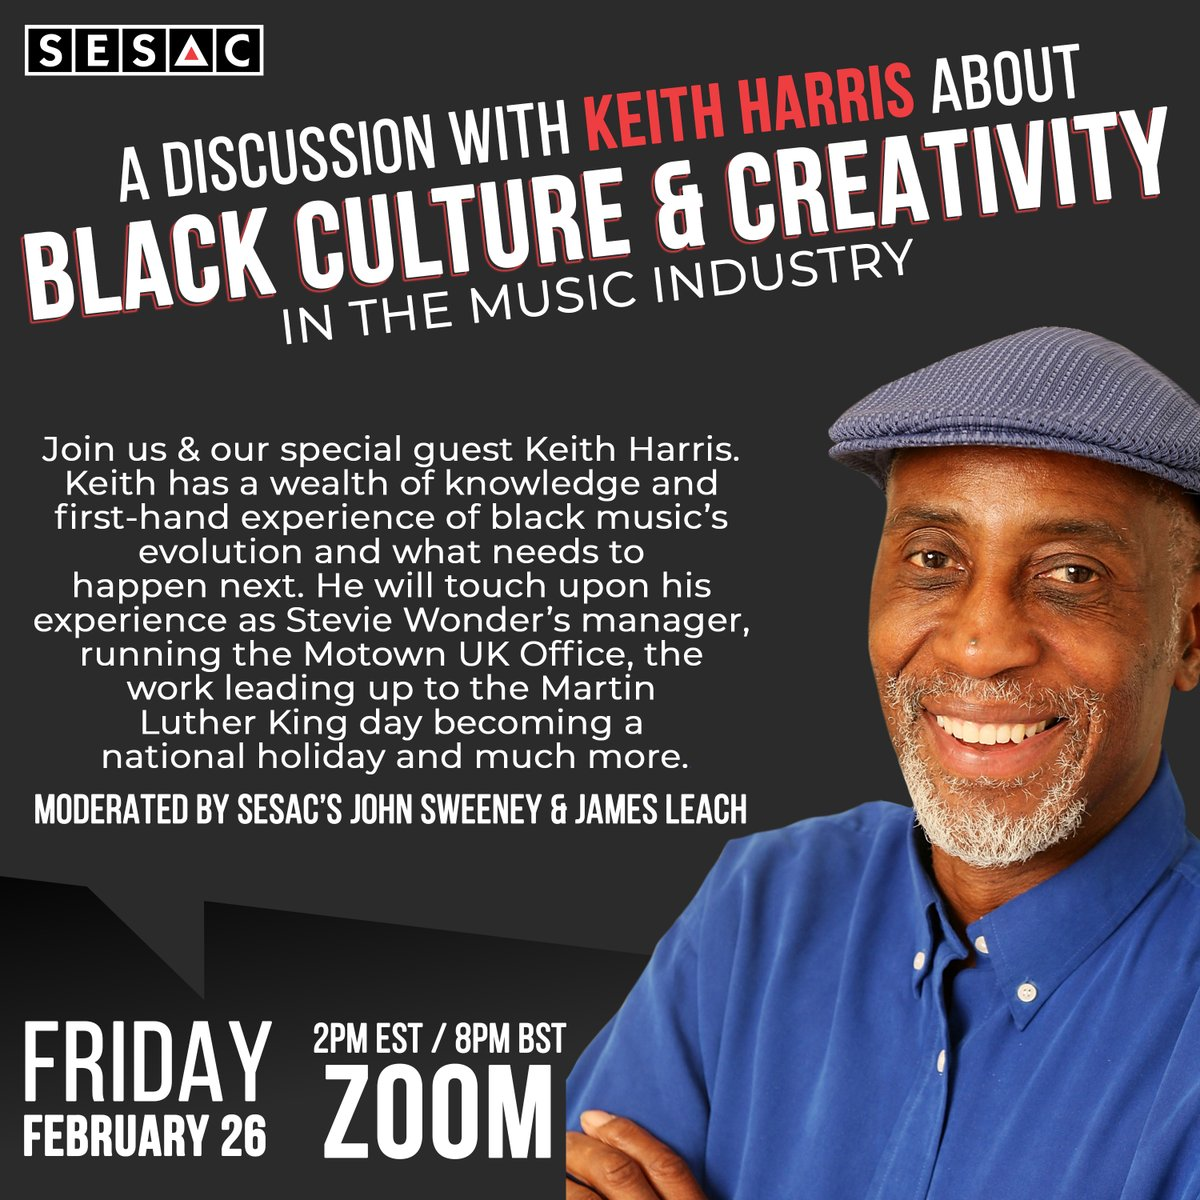 Join us this Friday for a conversation with Keith Harris. He will touch on his experience as #StevieWonder's manager, running the #Motown UK office, the work leading up to #MLKDay becoming a national holiday and more! ⁠ ⁠ Sign up now: